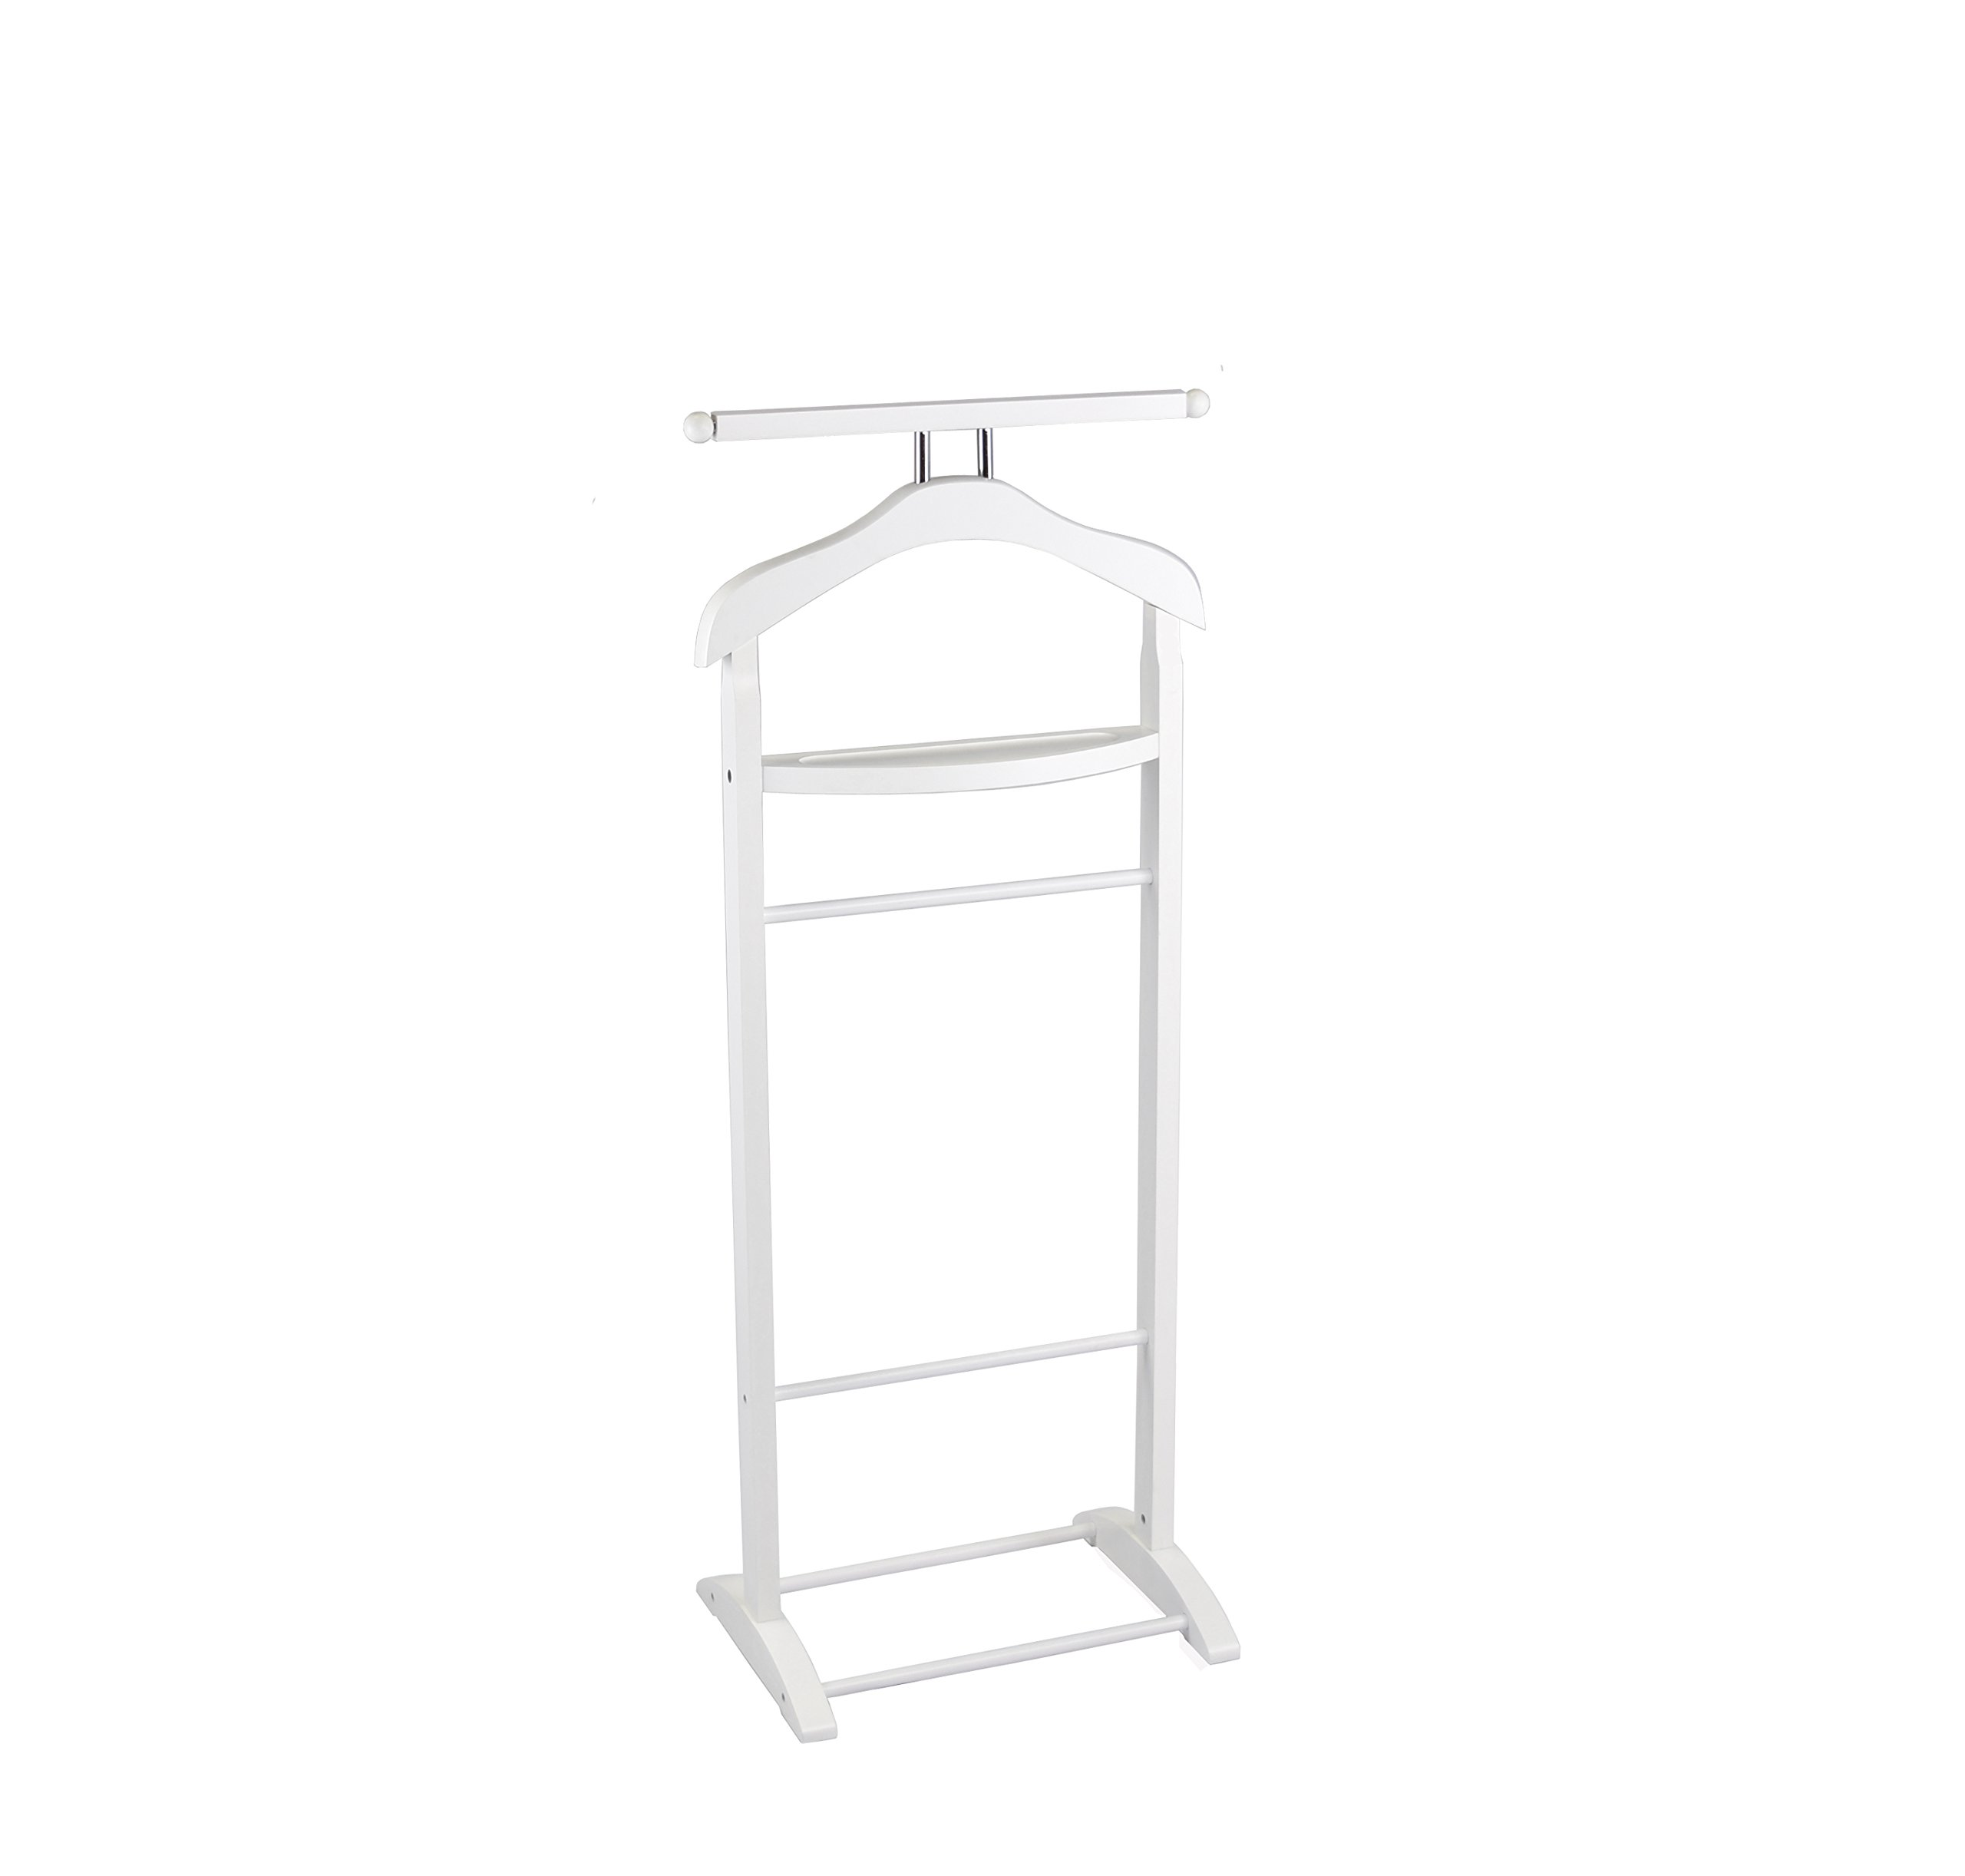 Proman Products VL17015 Knight Valet with Extended Bar and Key Rack, 43.5'', White